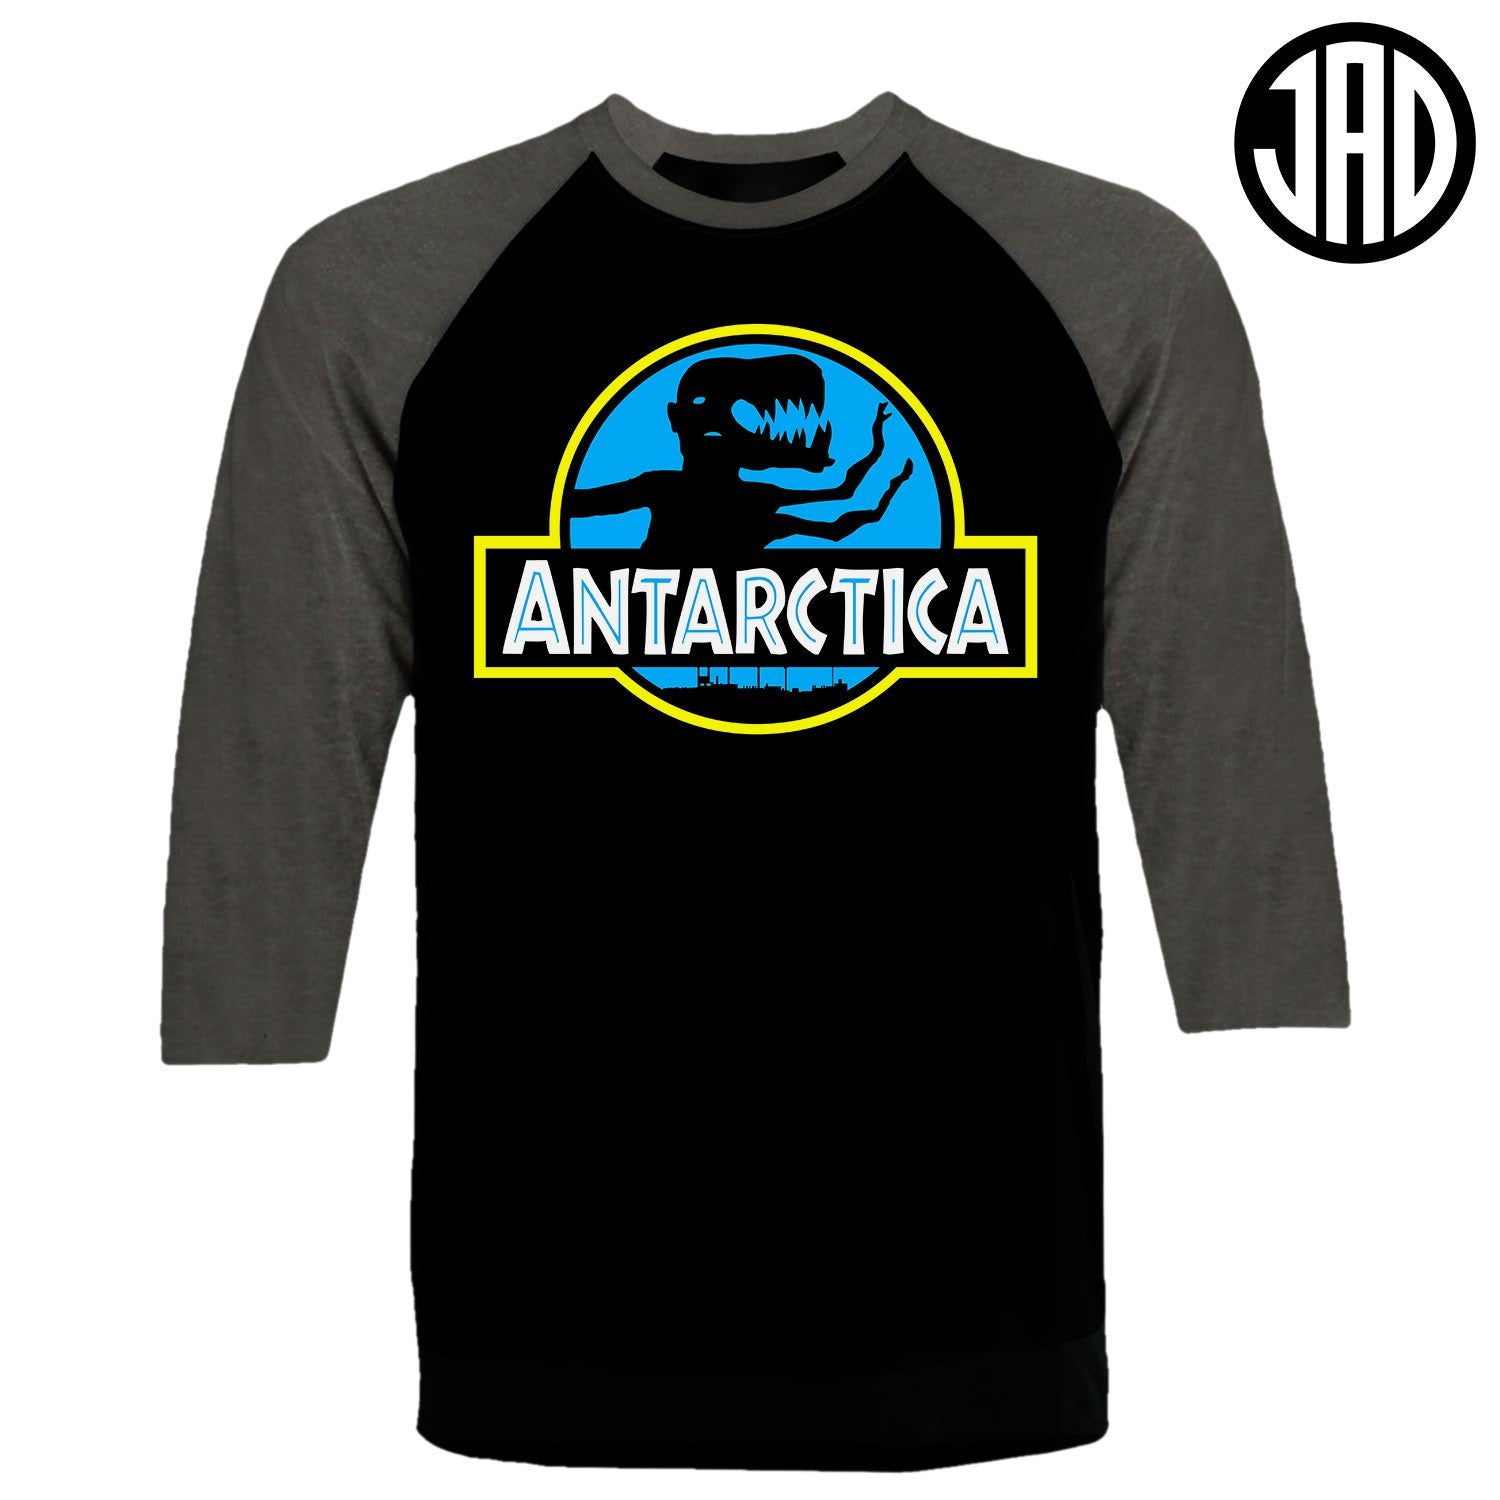 Antarctica - Men's Baseball Tee